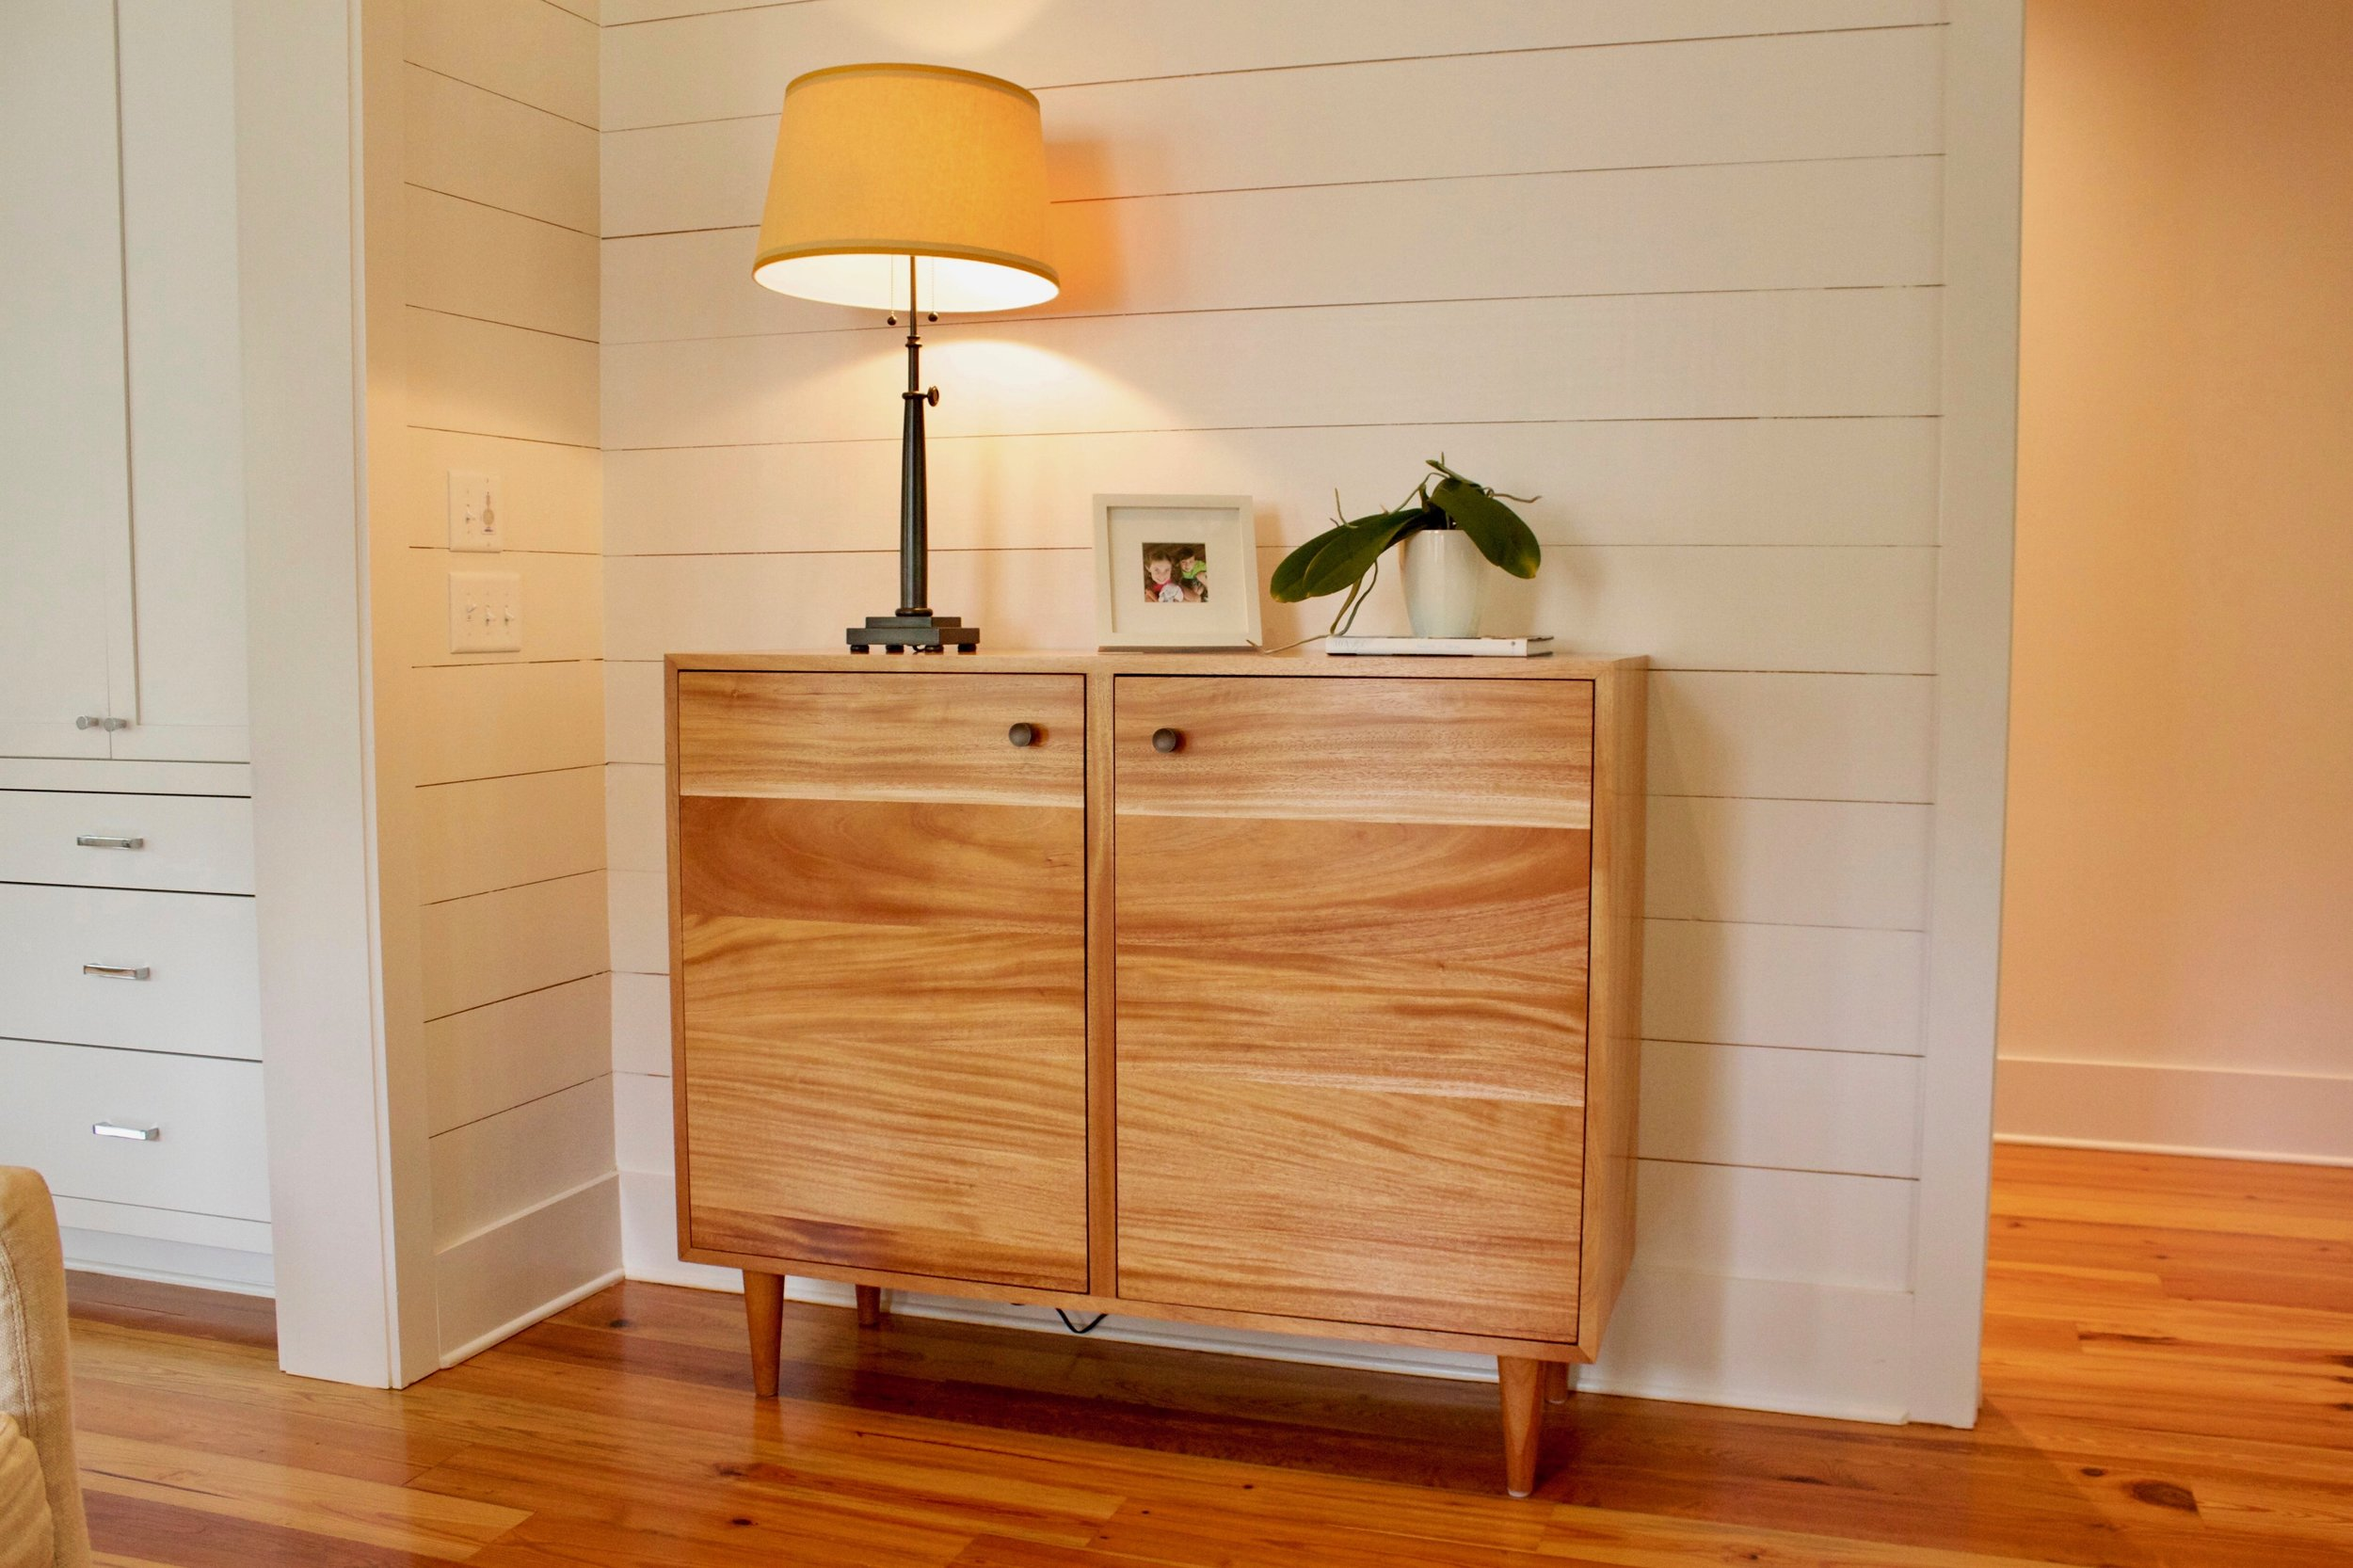 CUSTOM WOOD PROJECTS - Are you looking for the perfect custom piece for your home or office? We love to make your vision come alive and create a custom masterpiece unique only to you.